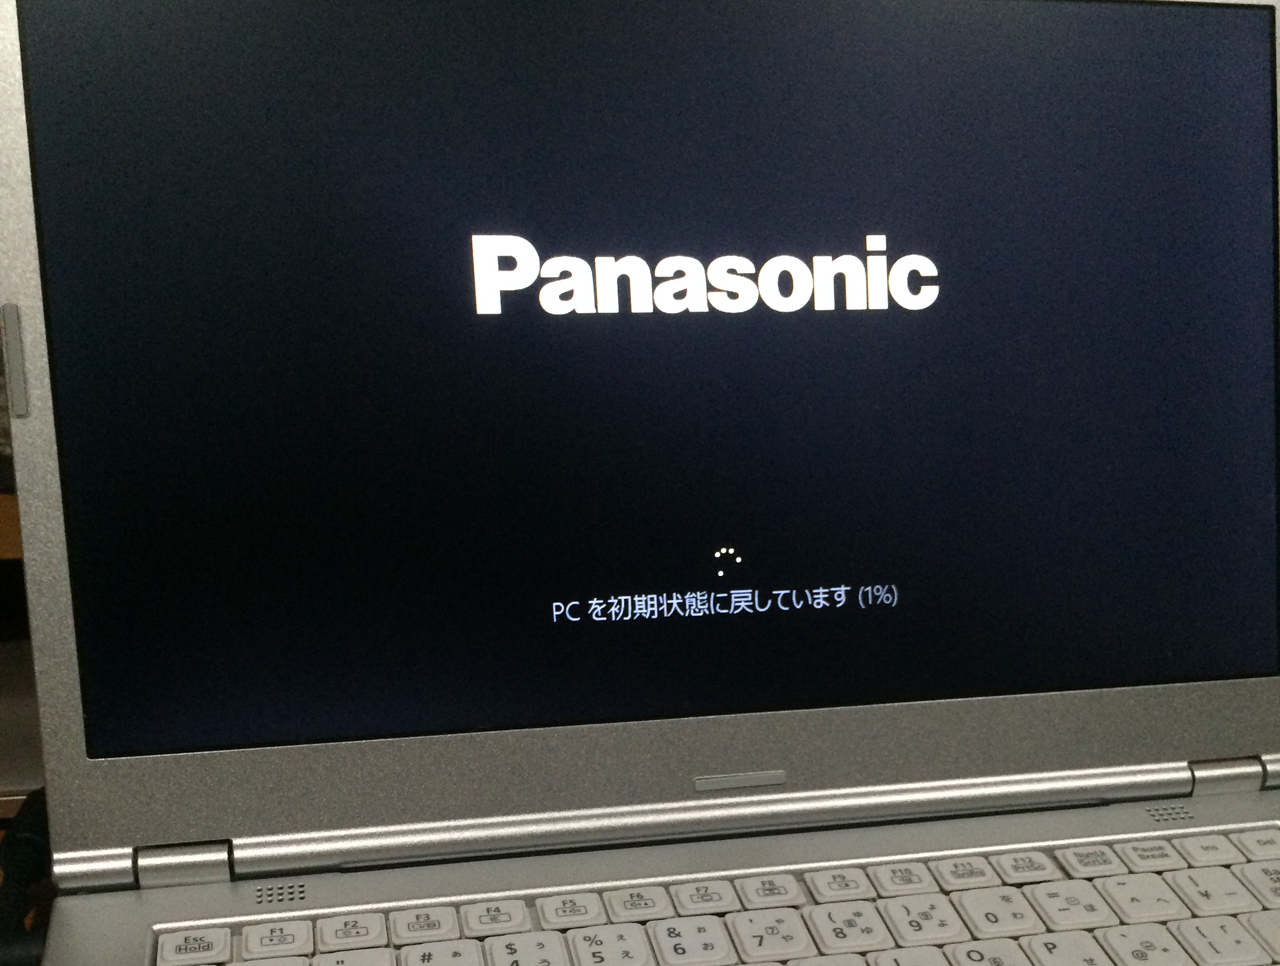 panasonic Let's note LX3